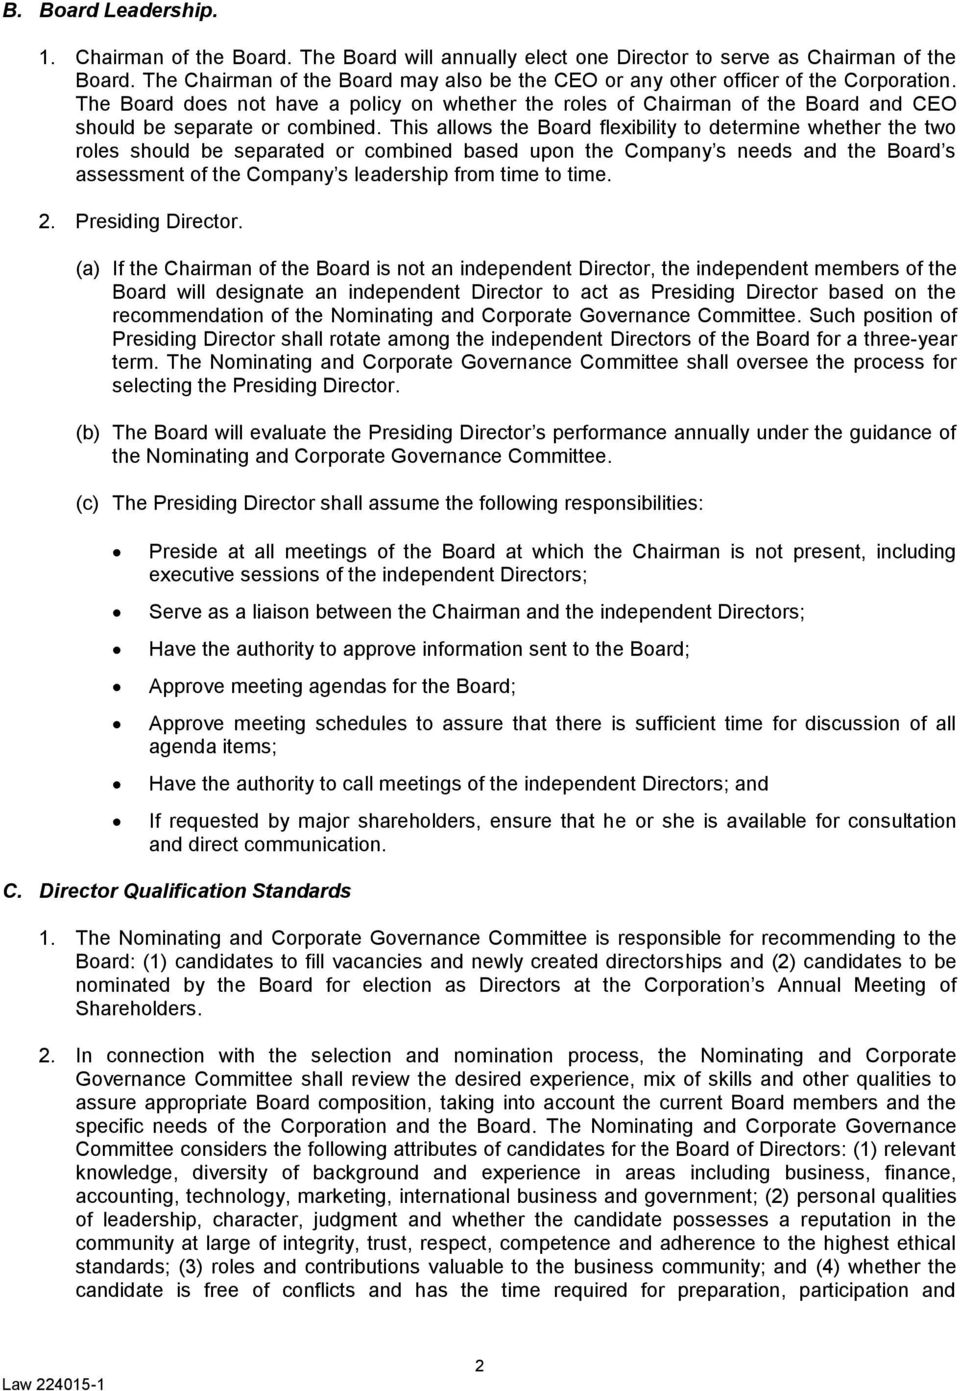 The Board does not have a policy on whether the roles of Chairman of the Board and CEO should be separate or combined.